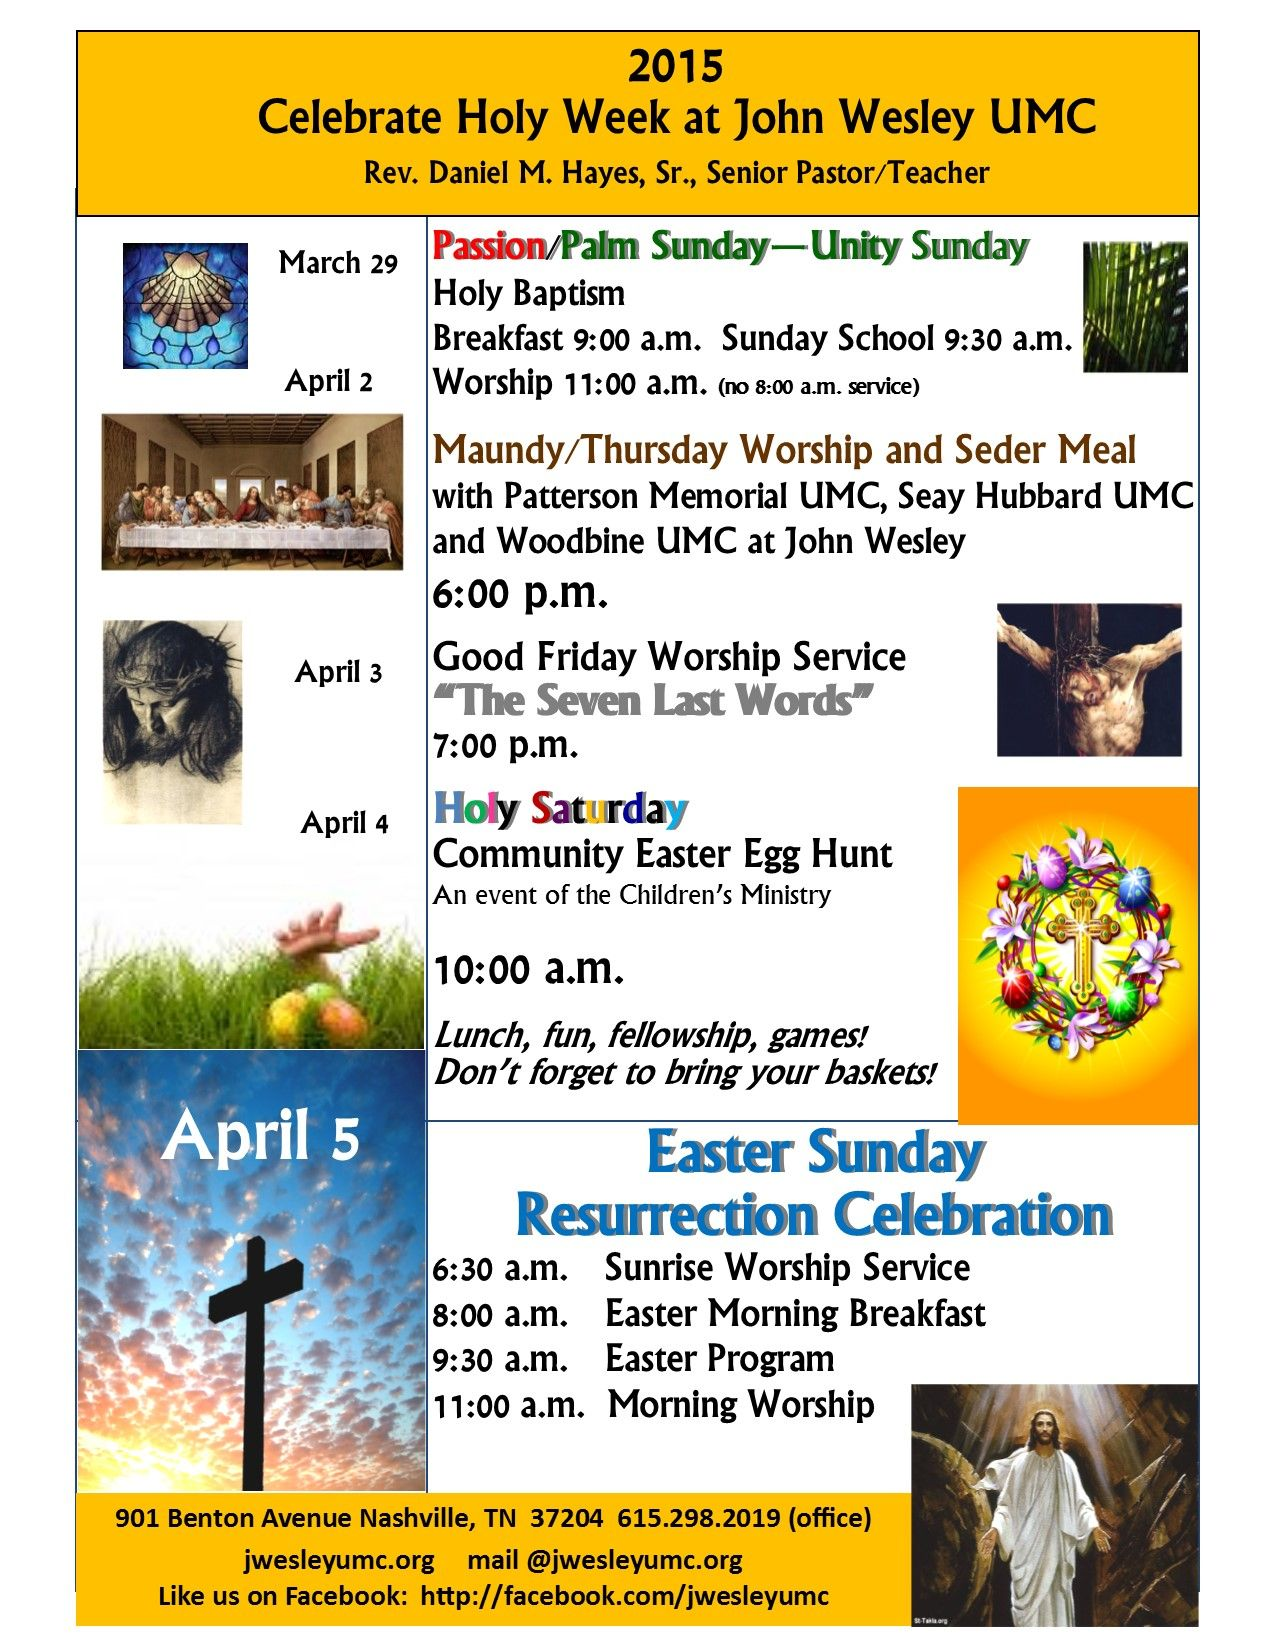 announcing the activities of holy week john wesley umc holy week flyer 2015 cjh